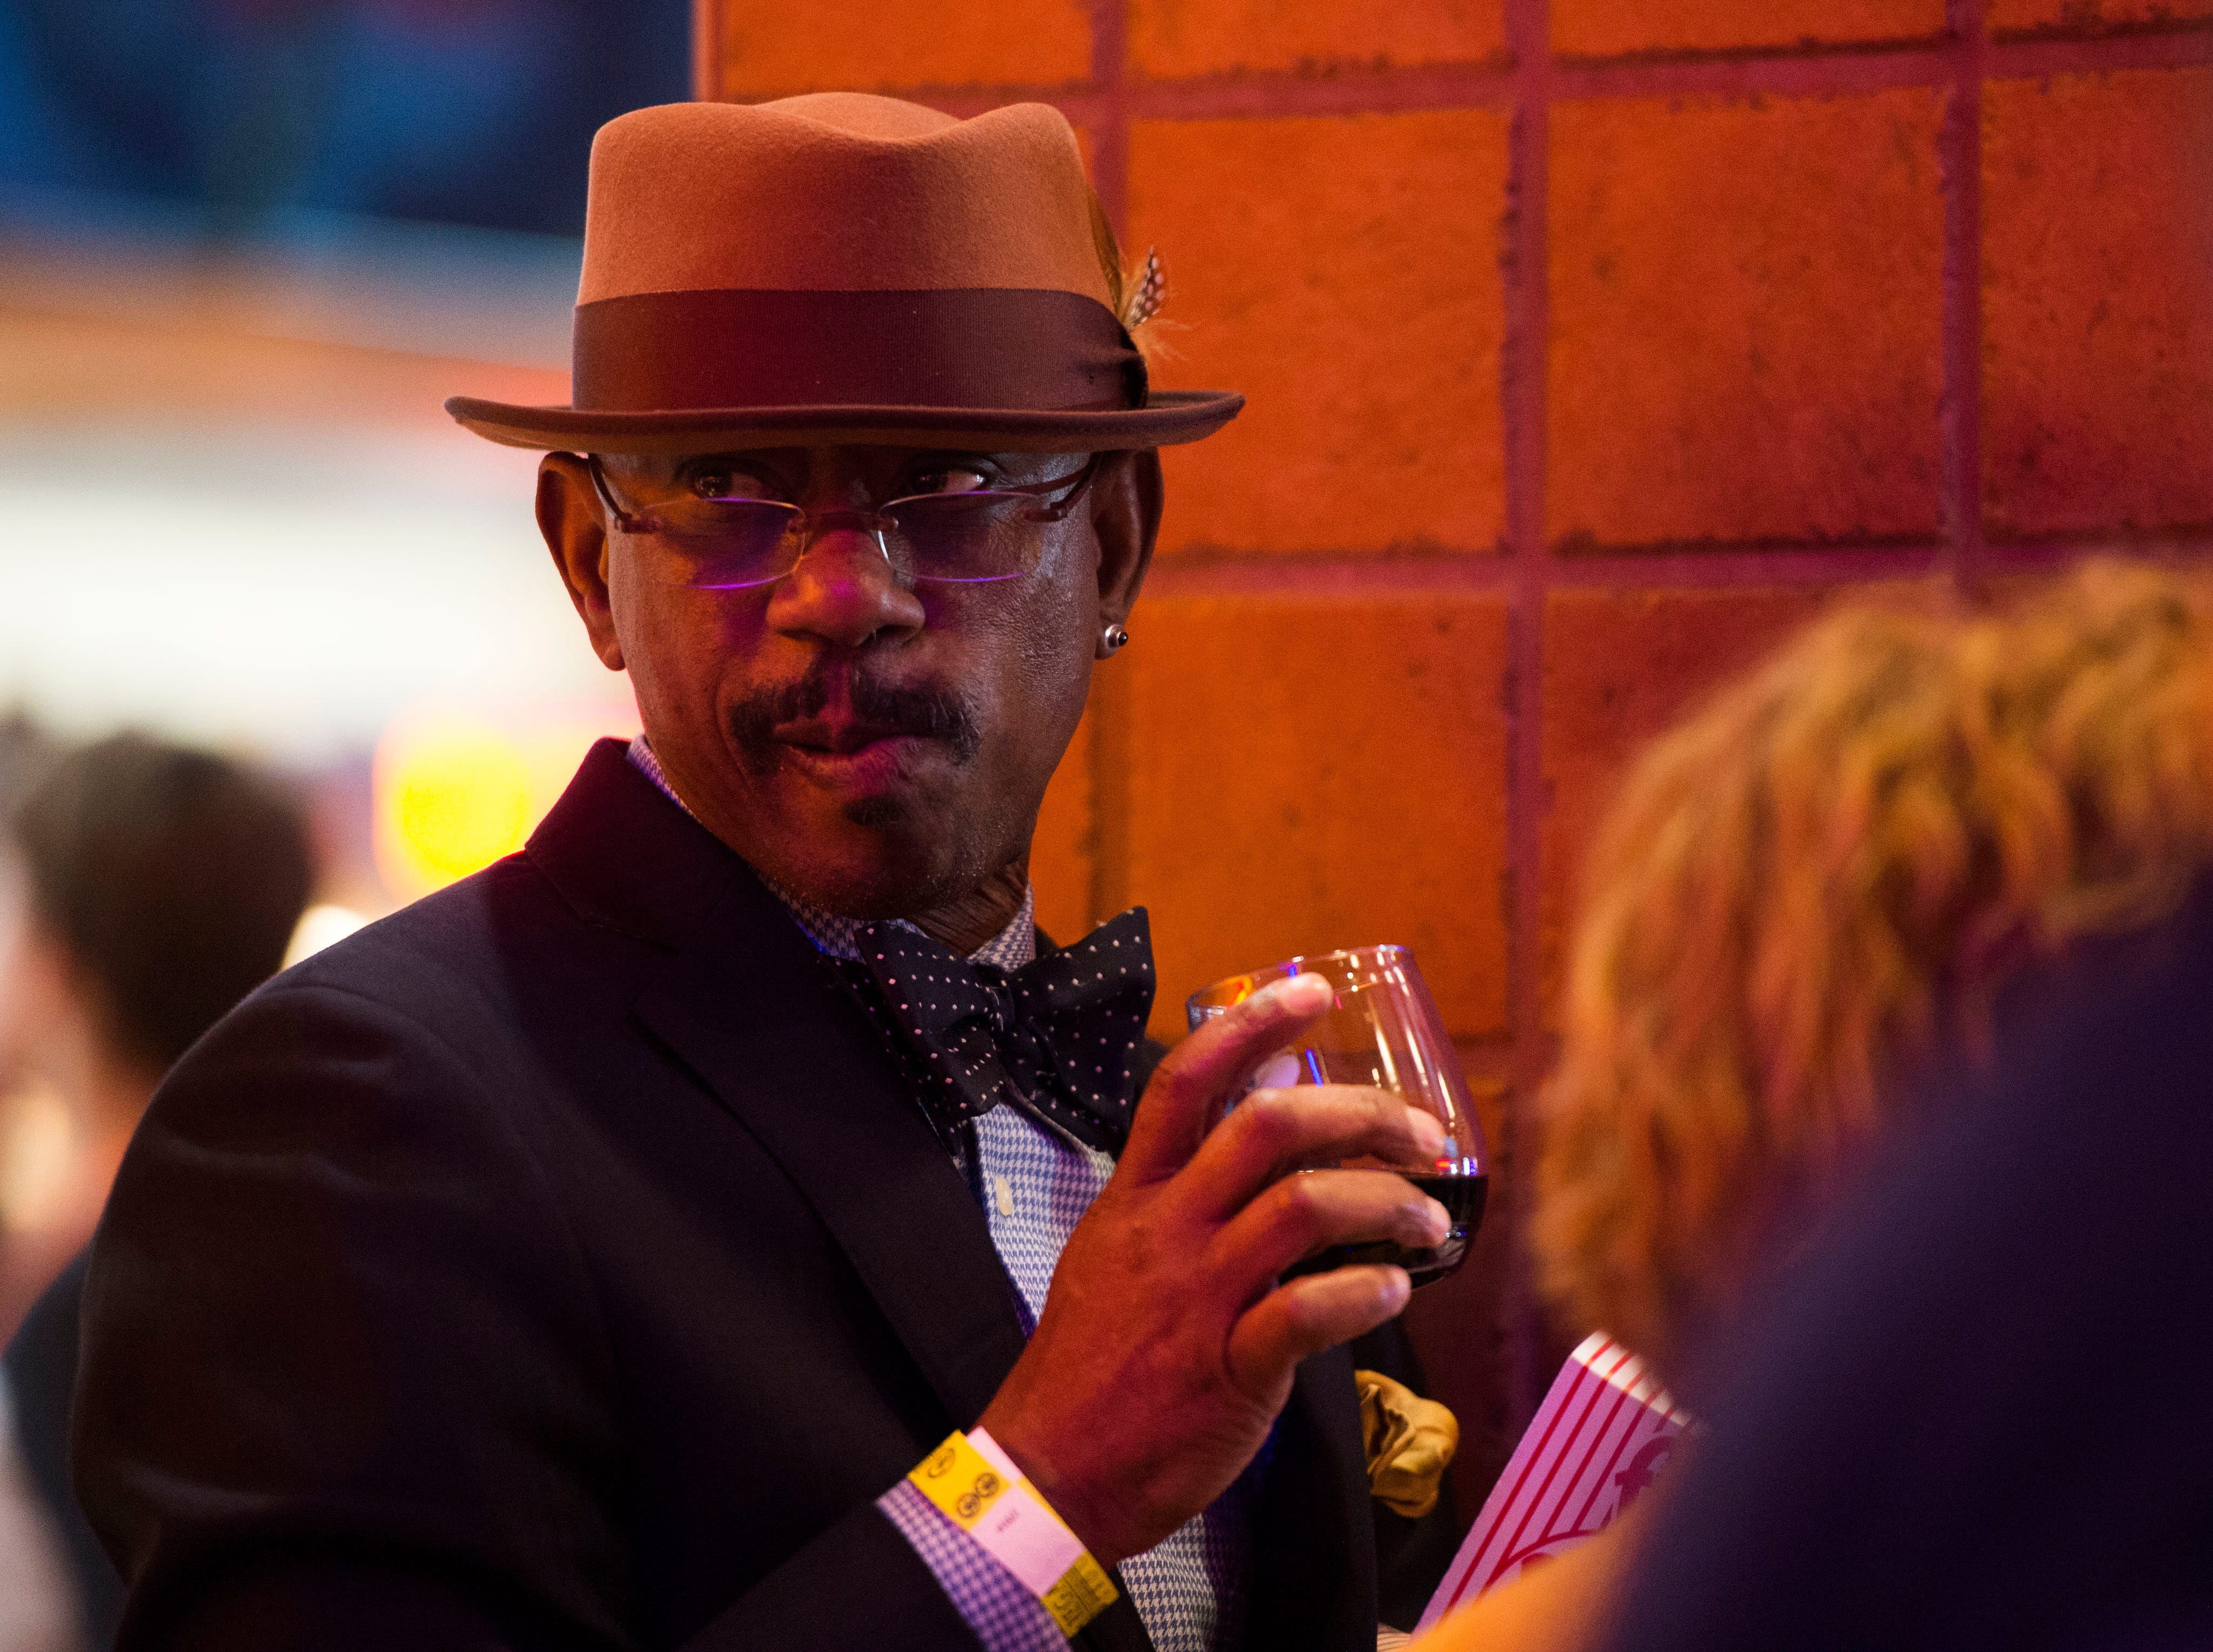 """Terry Washington of Knoxville sips a drink while waiting for """"Aquaman"""" star Patrick Wilson to arrive at Regal's annual red carpet premiere for Variety at Regal Pinnacle Stadium 18, Thursday, Dec. 13, 2018."""